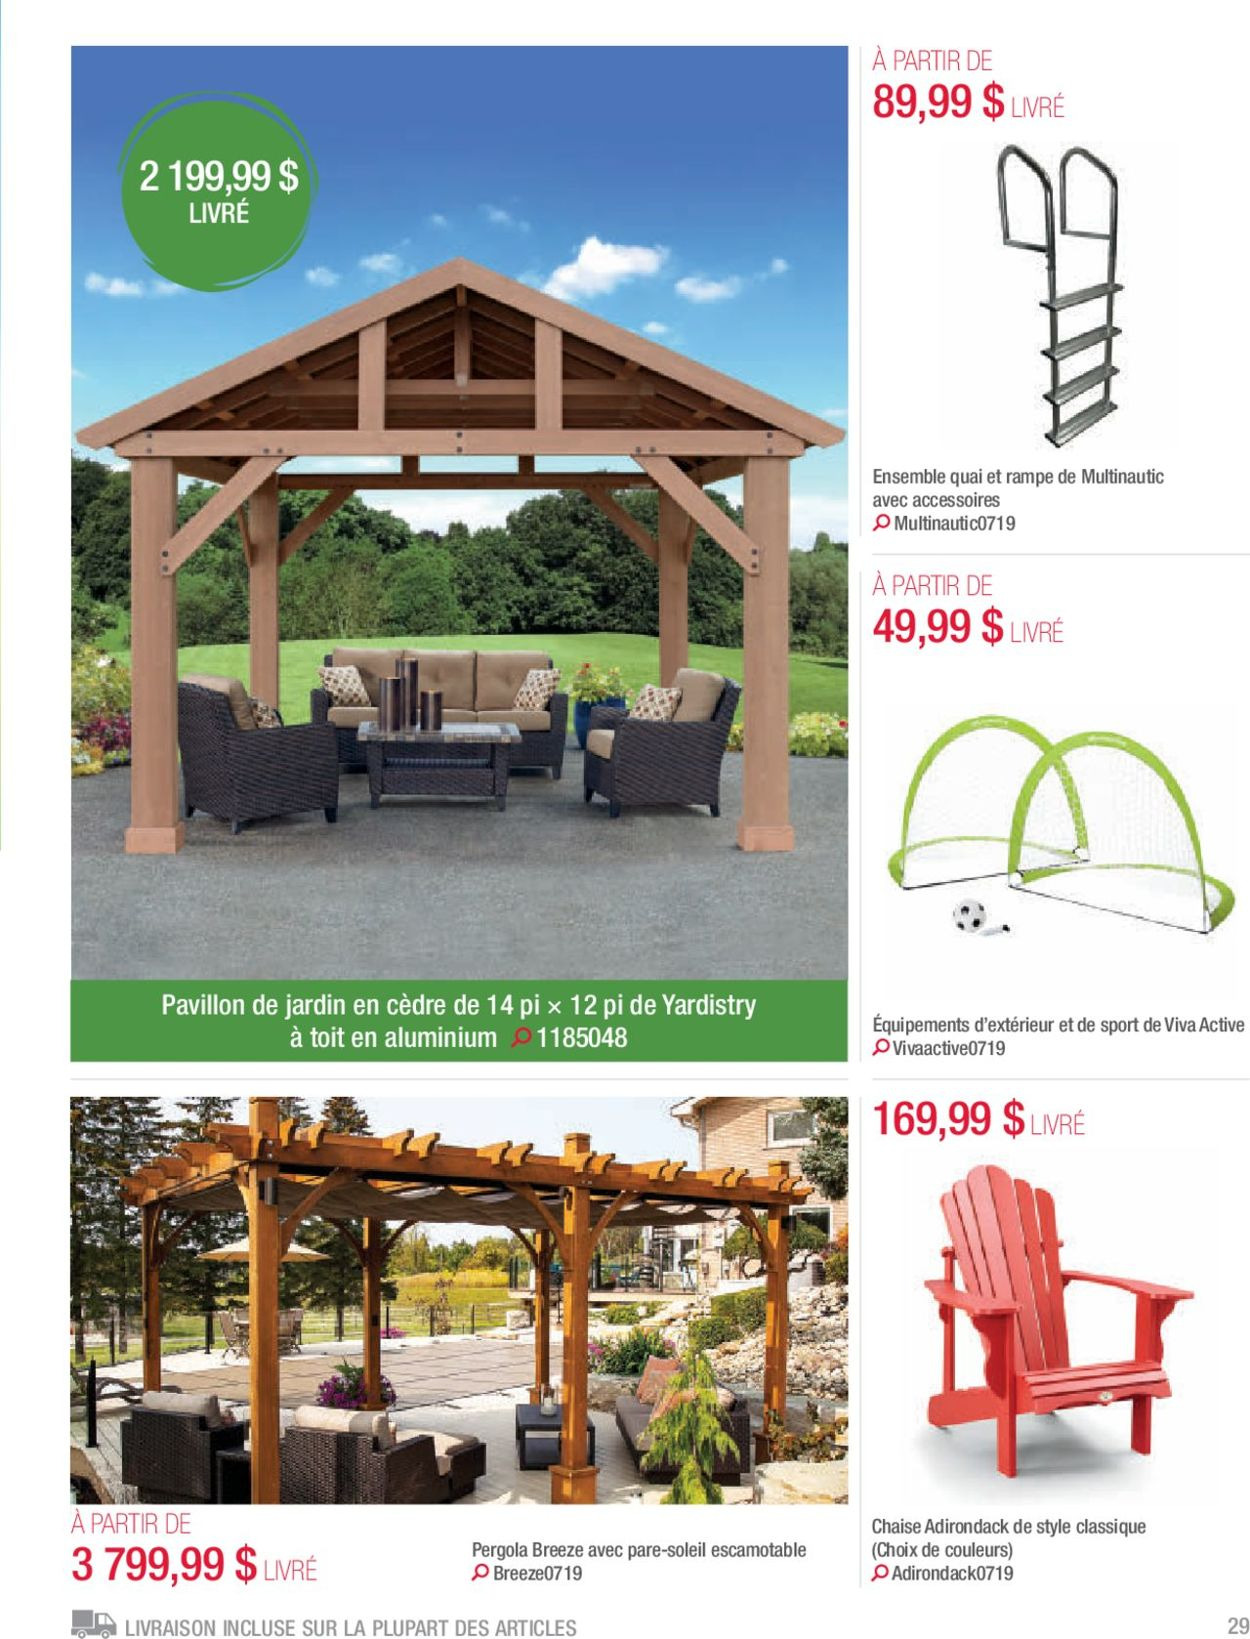 costco flyer ptv1eA3dXl 89